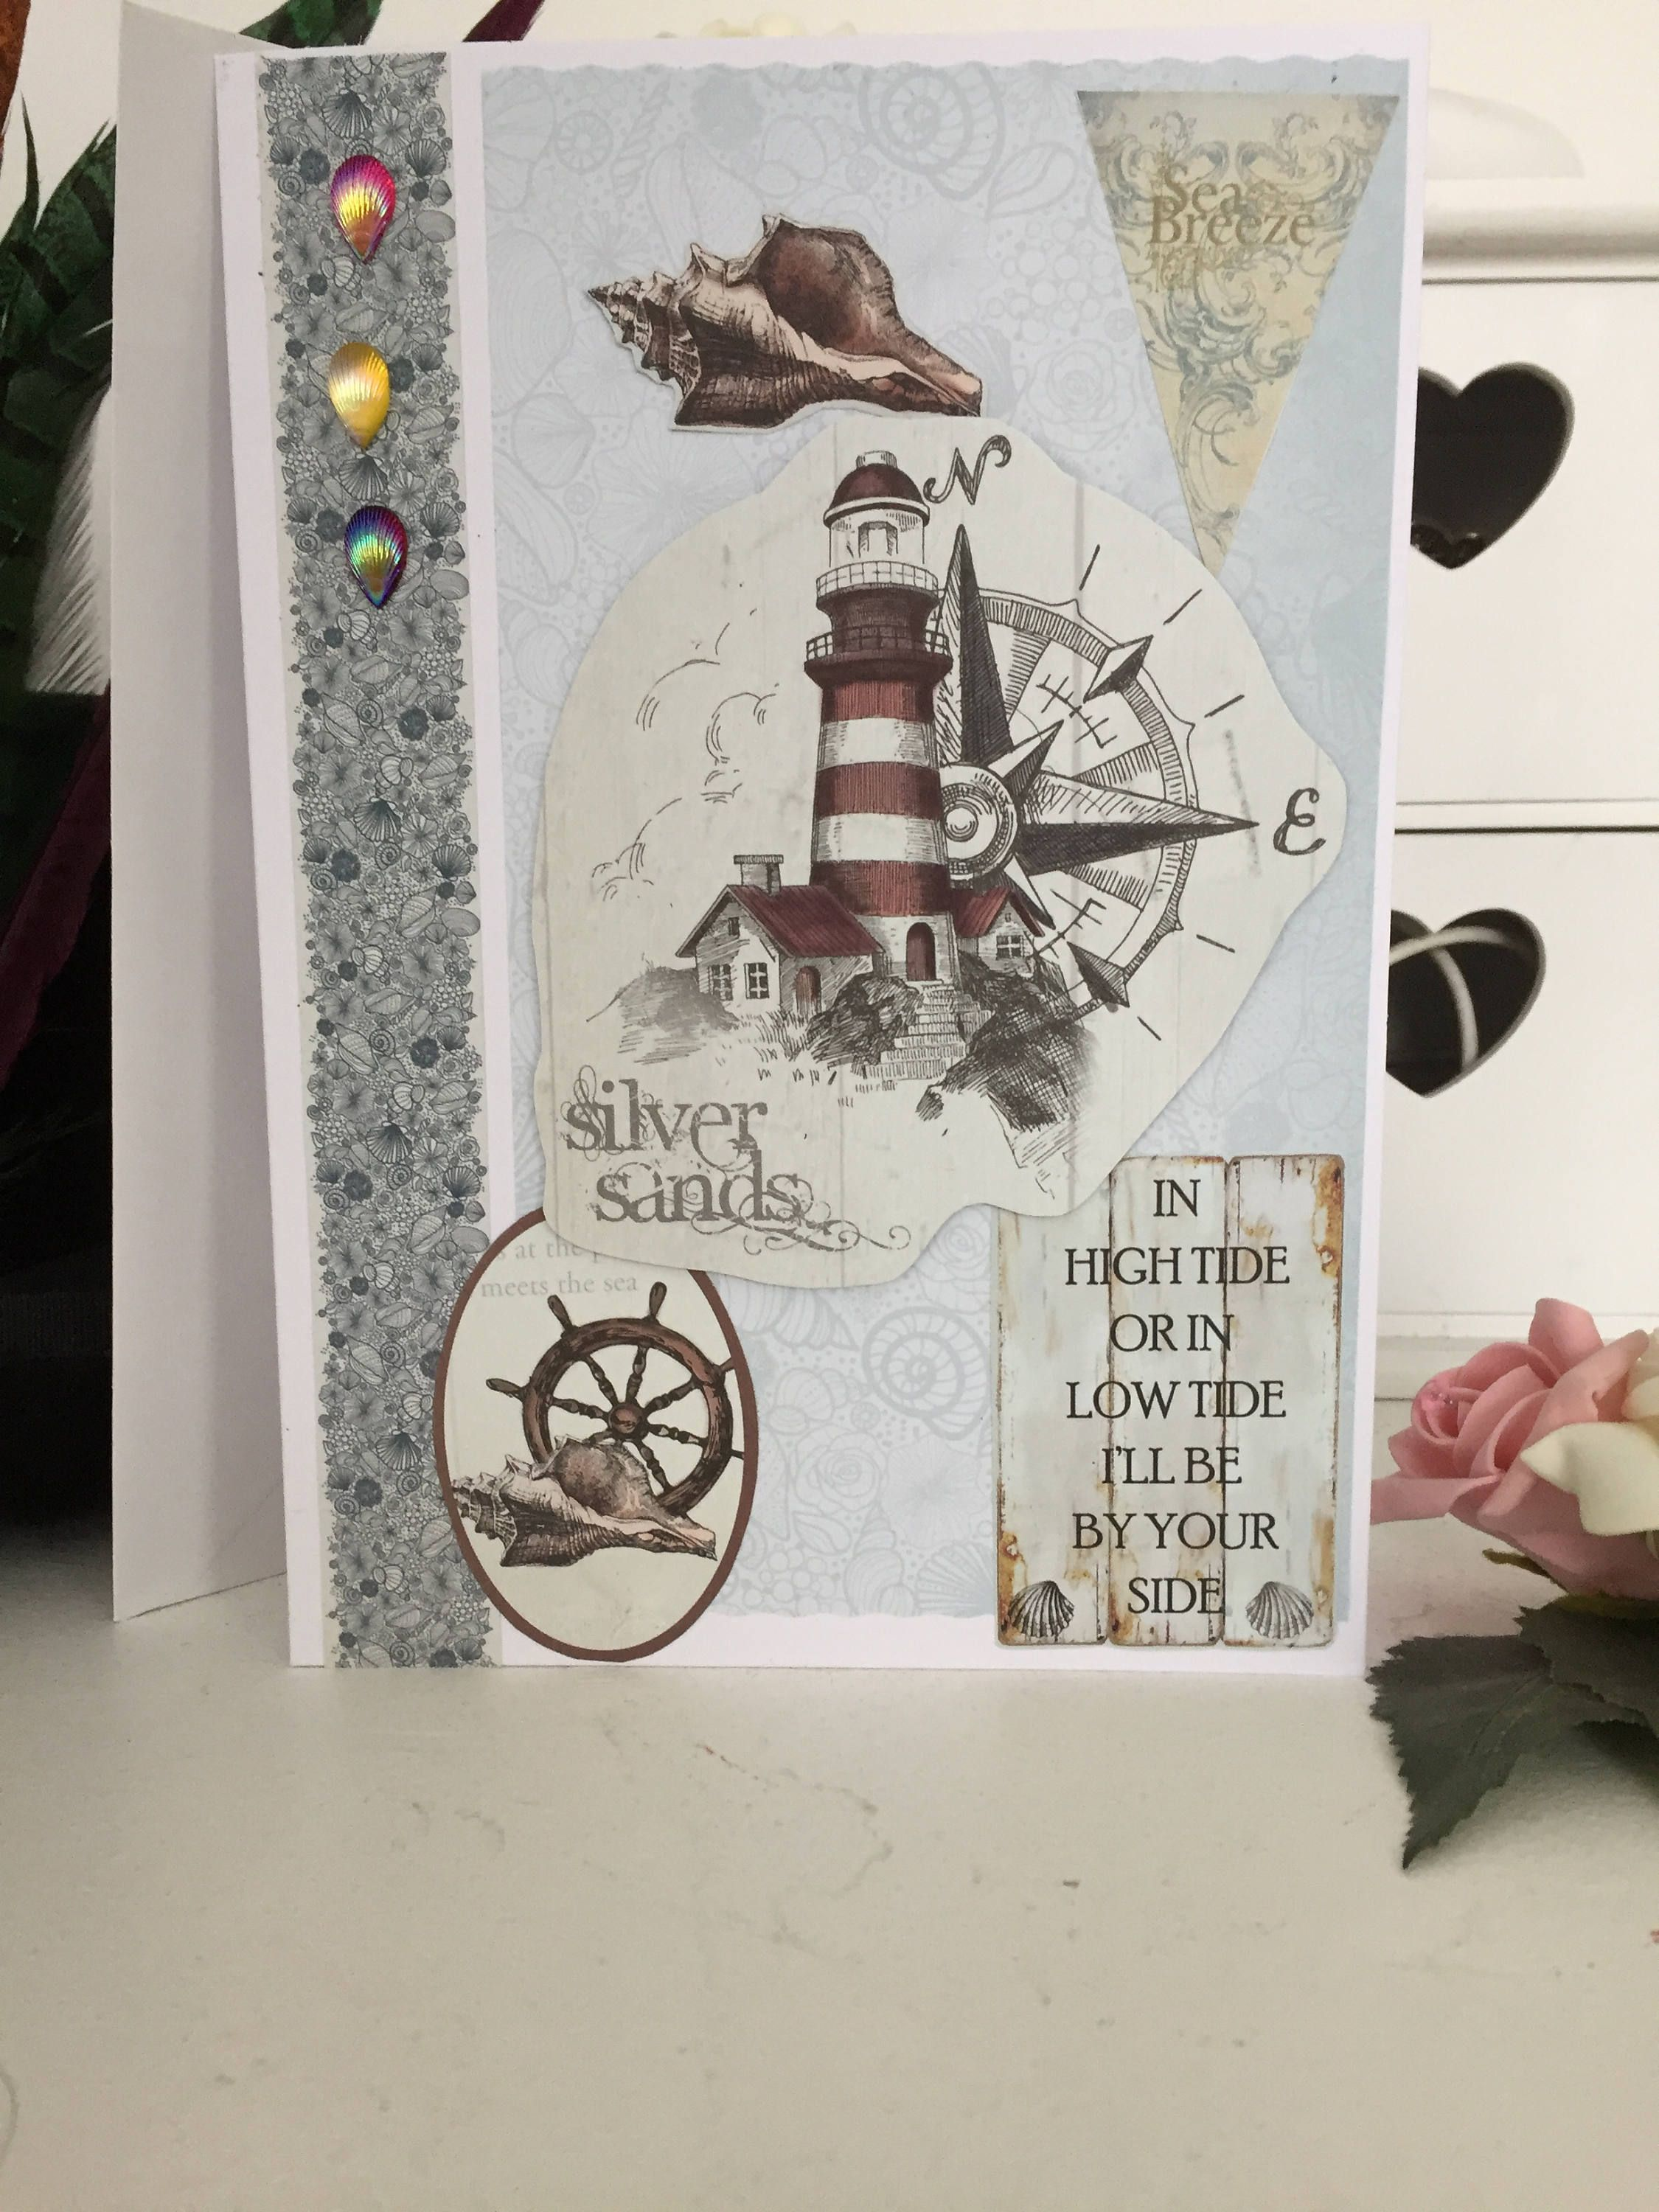 Lighthouse by traceyscards on etsy art pinterest lighthouse lighthouse by traceyscards on etsy lighthousebirthday cardsgreeting kristyandbryce Choice Image